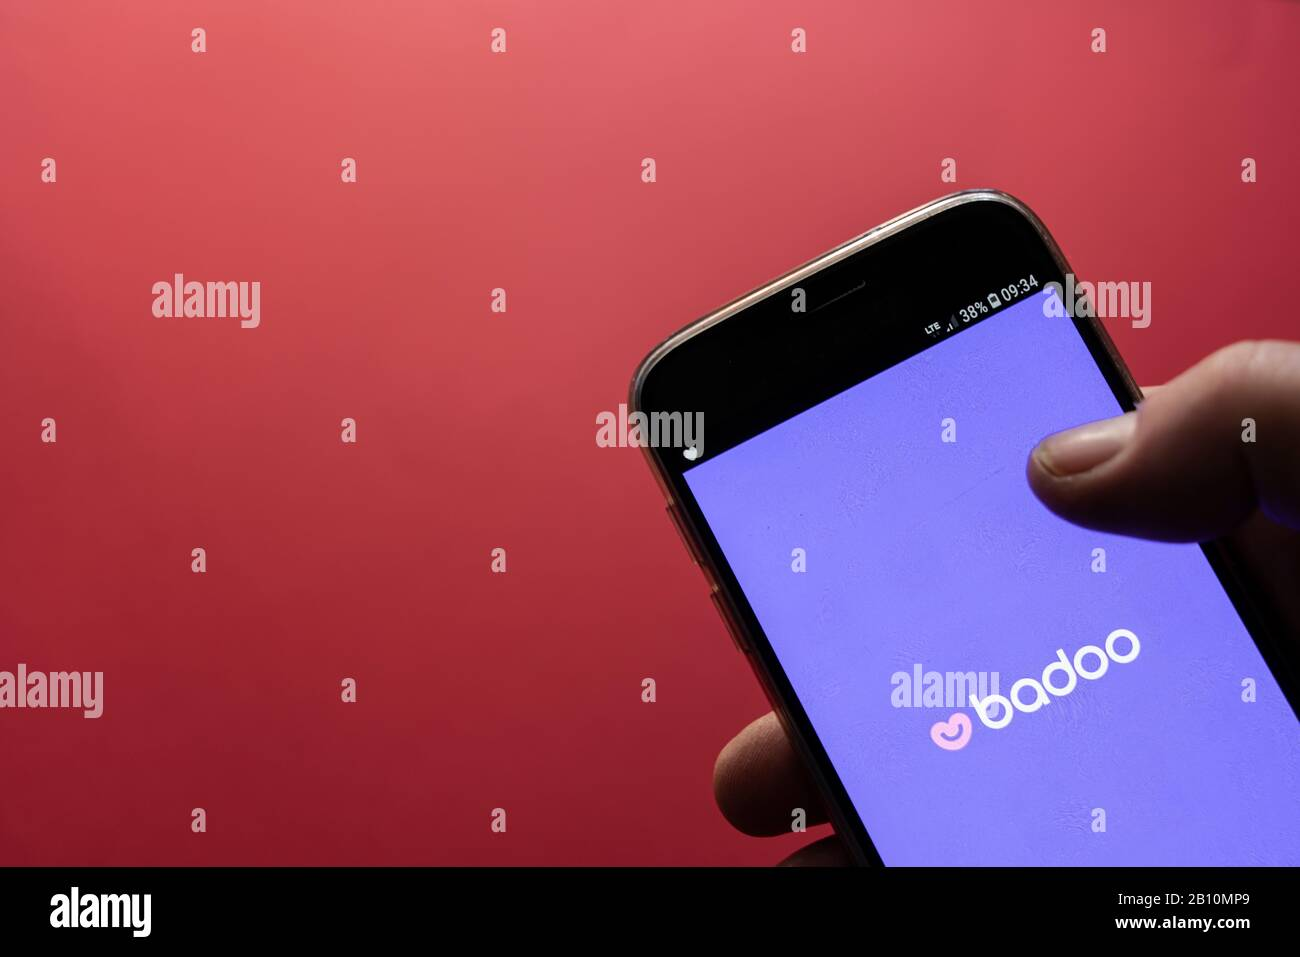 Login site badoo mobile How to